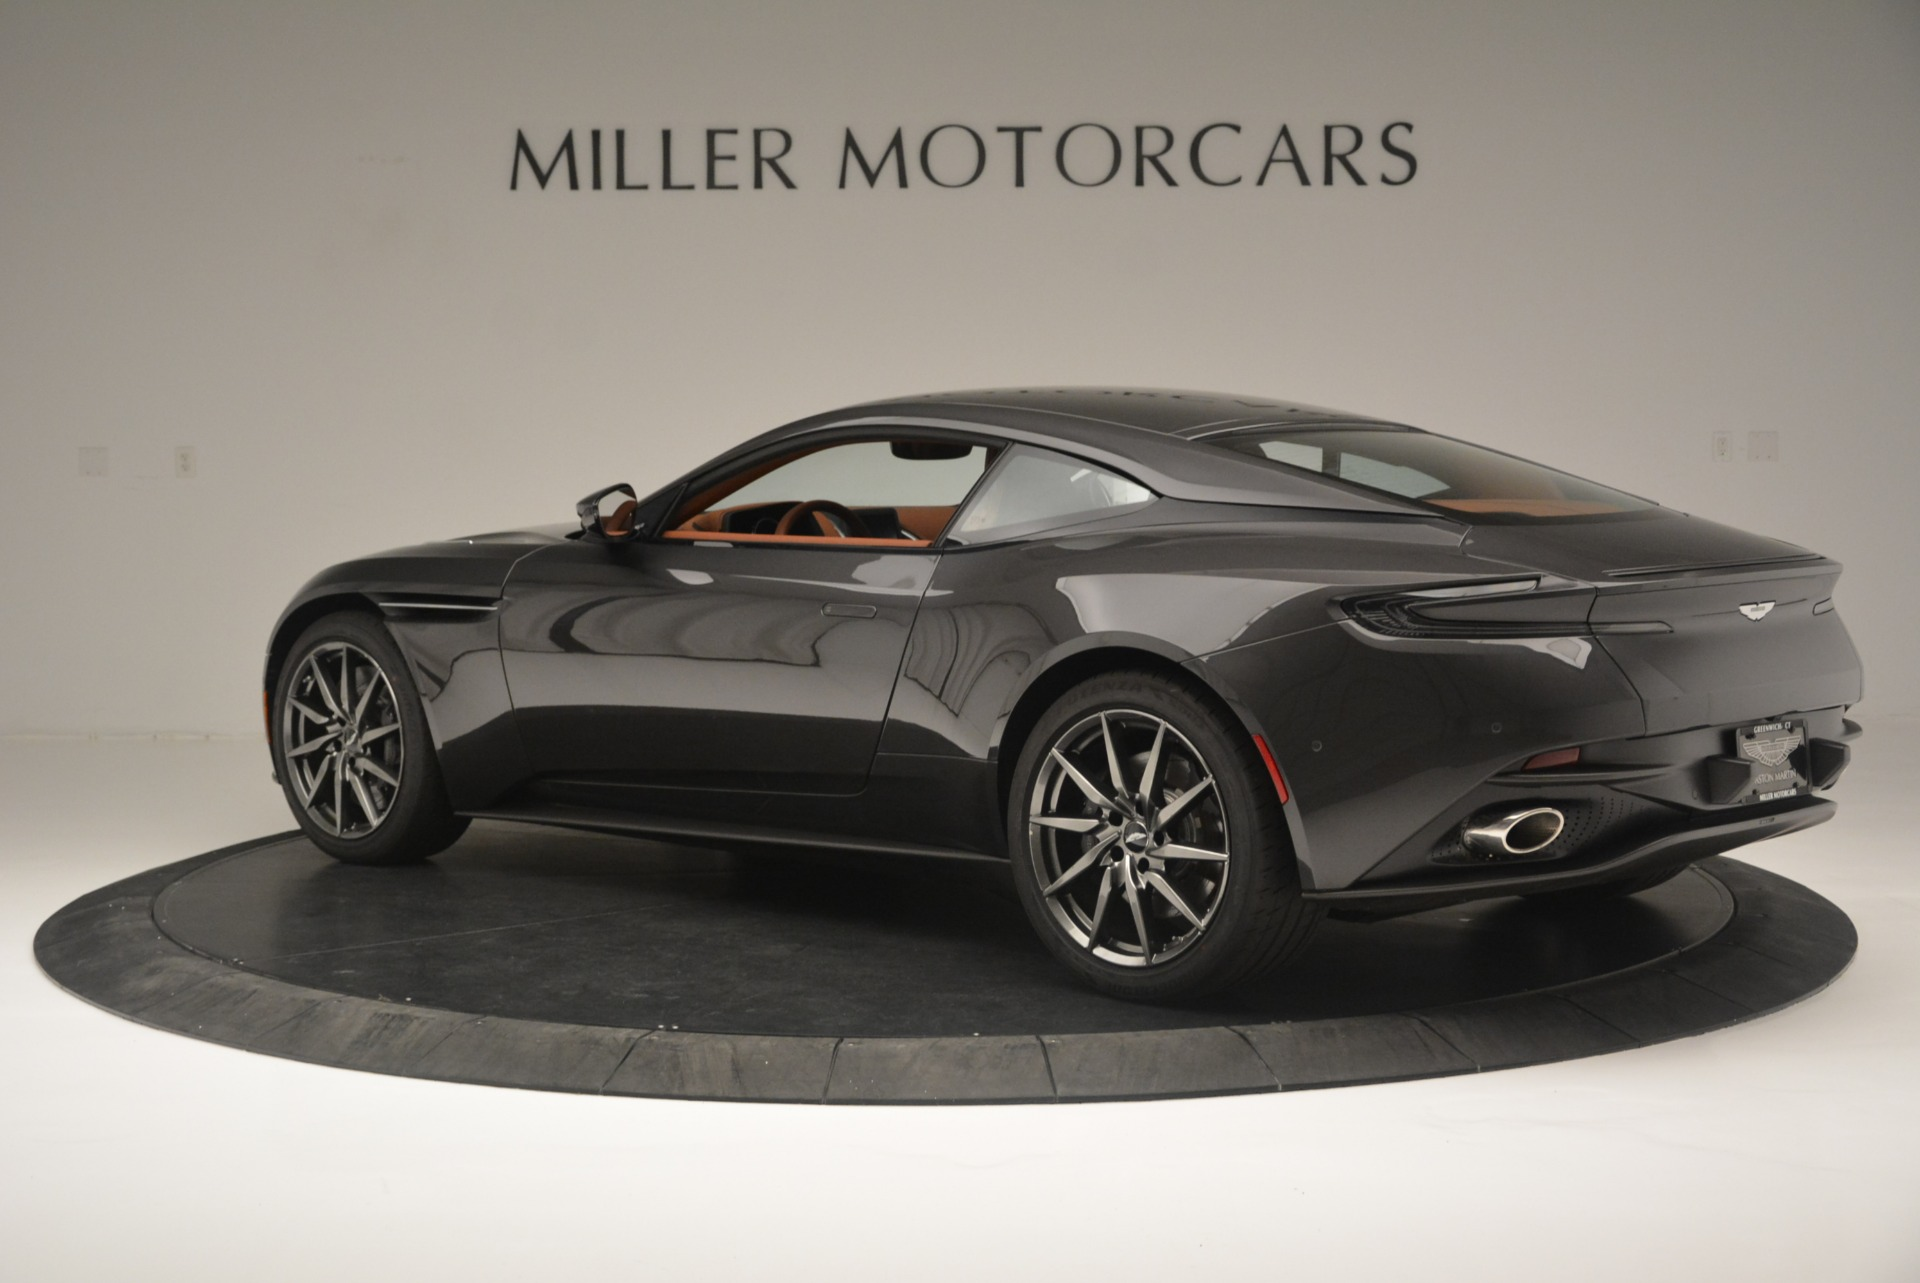 New 2018 Aston Martin DB11 V12 Coupe For Sale In Westport, CT 2226_p4